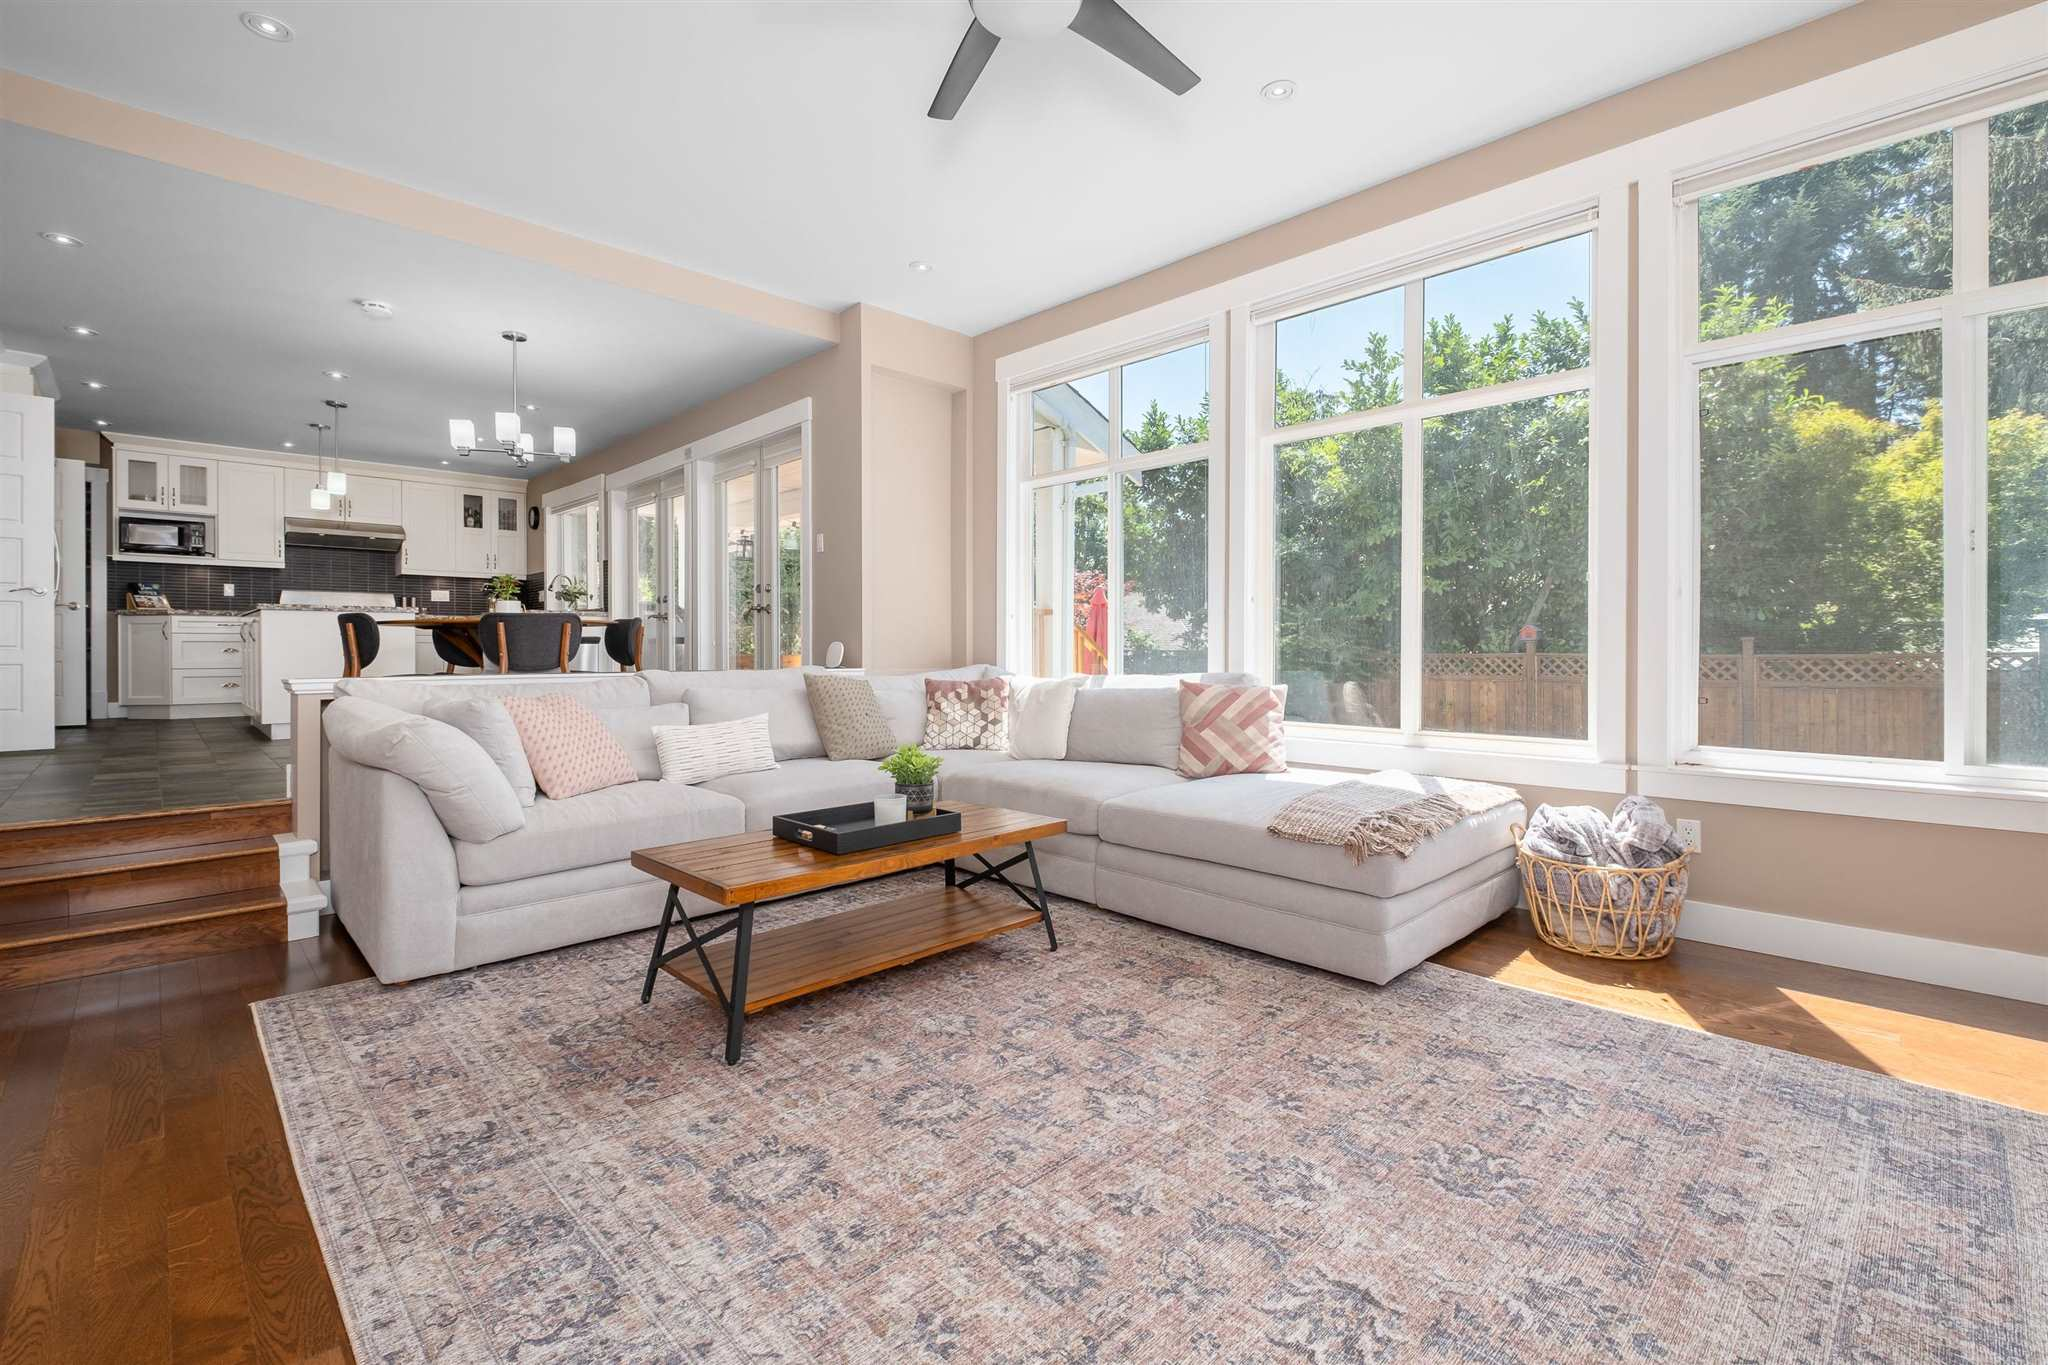 Listing Image of 1501 FREDERICK ROAD